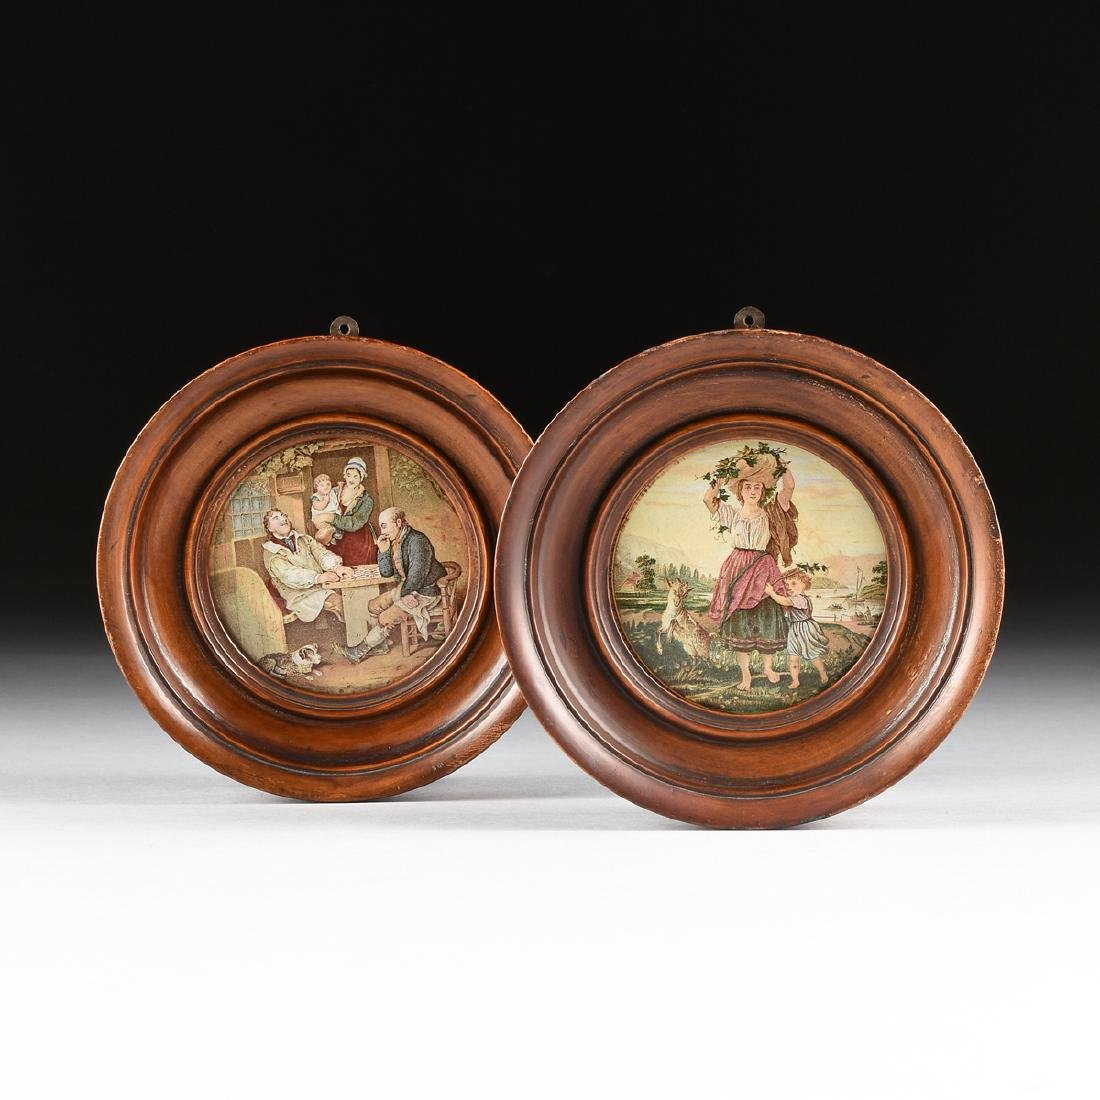 A GROUP OF TWO FRAMED VICTORIAN PRINTED CERAMIC PRATT